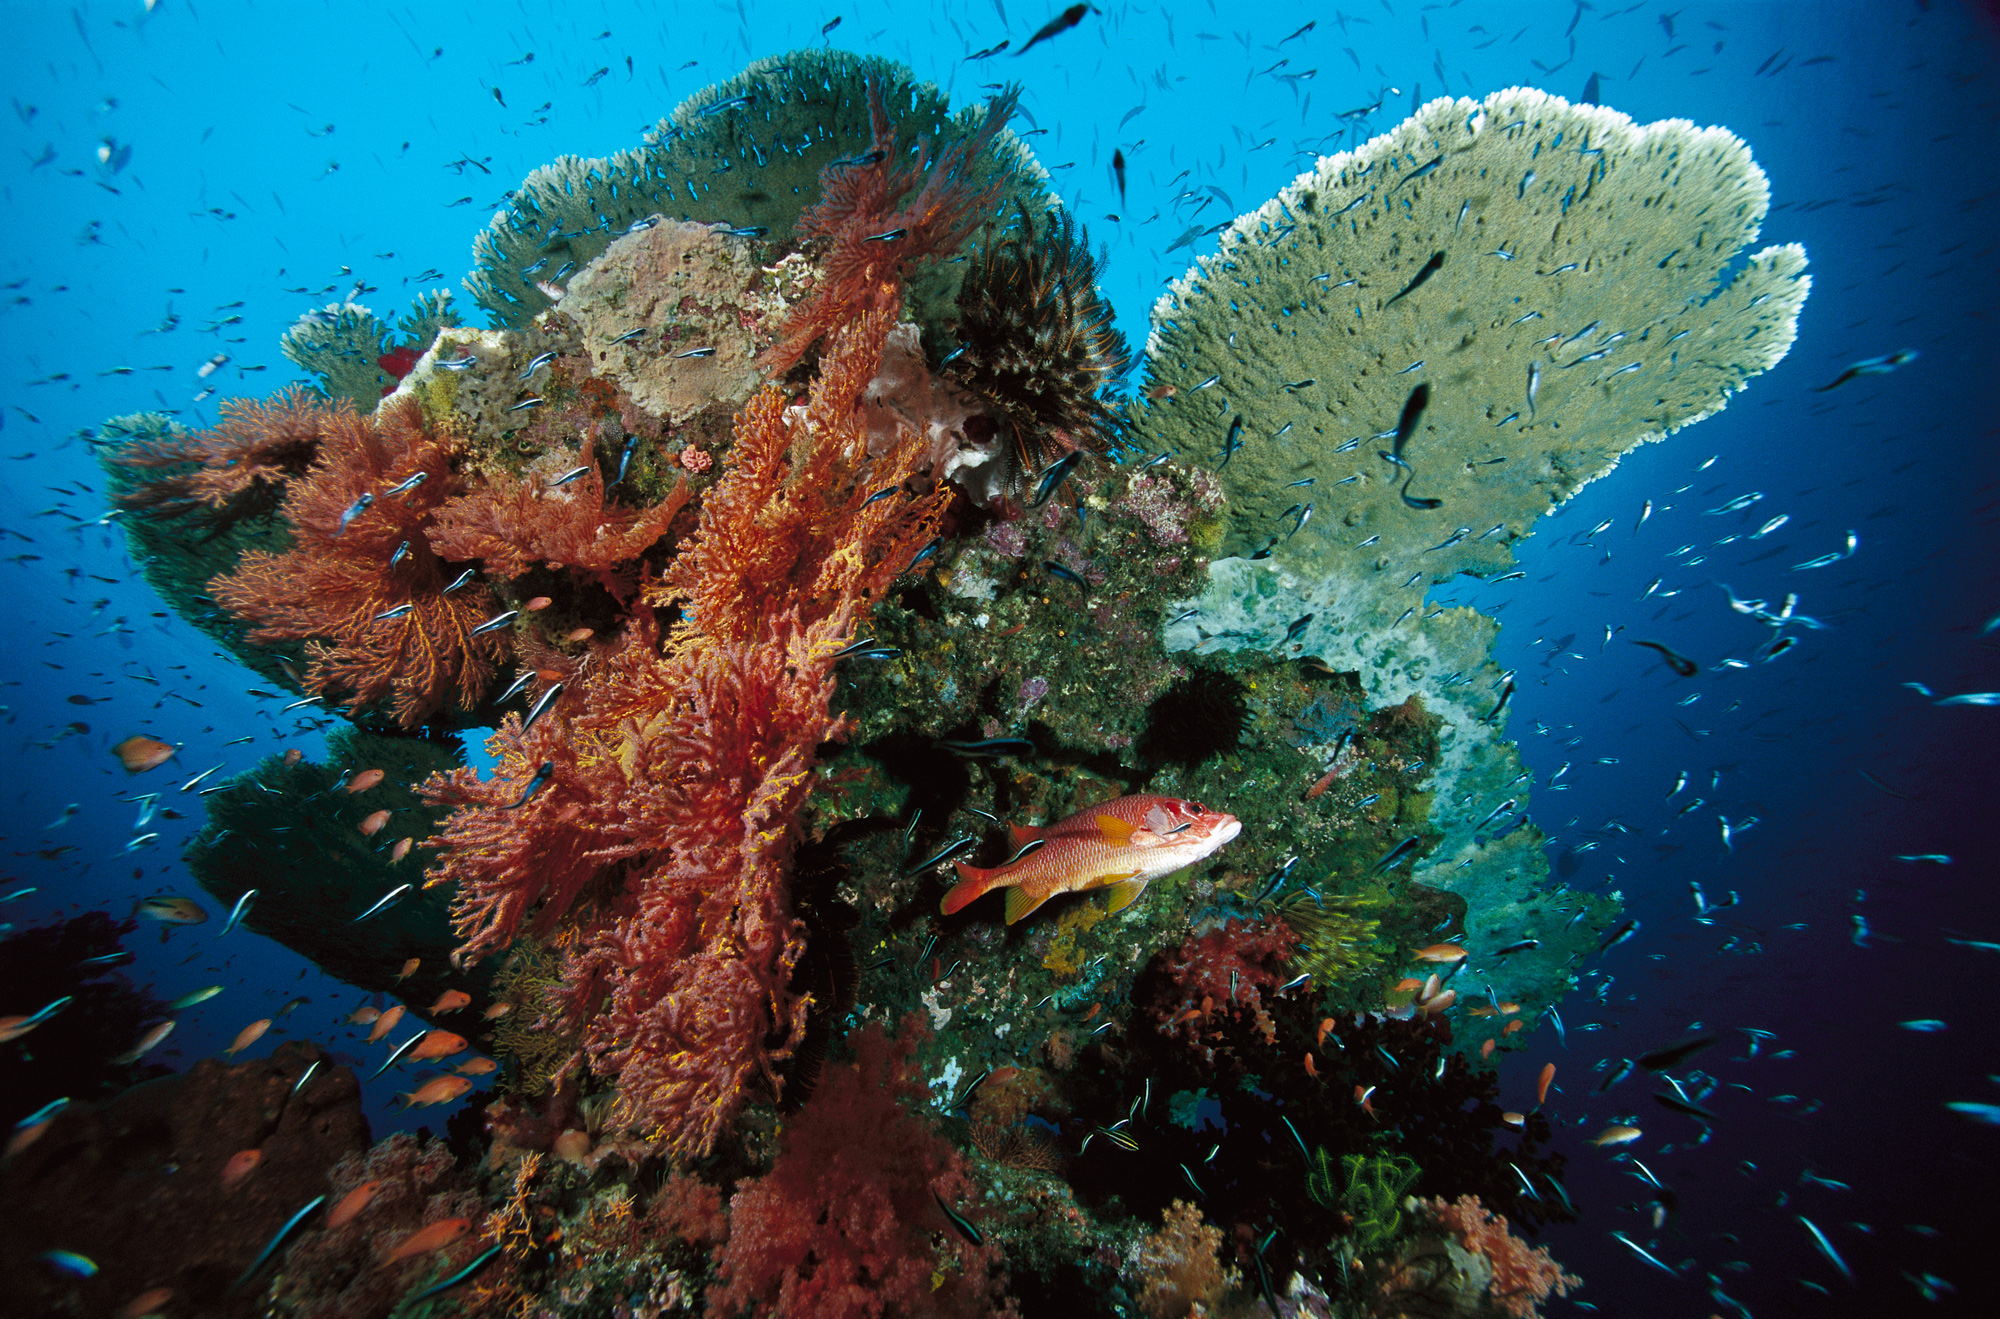 A variety of organisms make their home on this tropical coral reef in Indonesia.<div class='credit'><strong>Credit:</strong> A variety of organisms make their home on this tropical coral reef in Indonesia.</div>